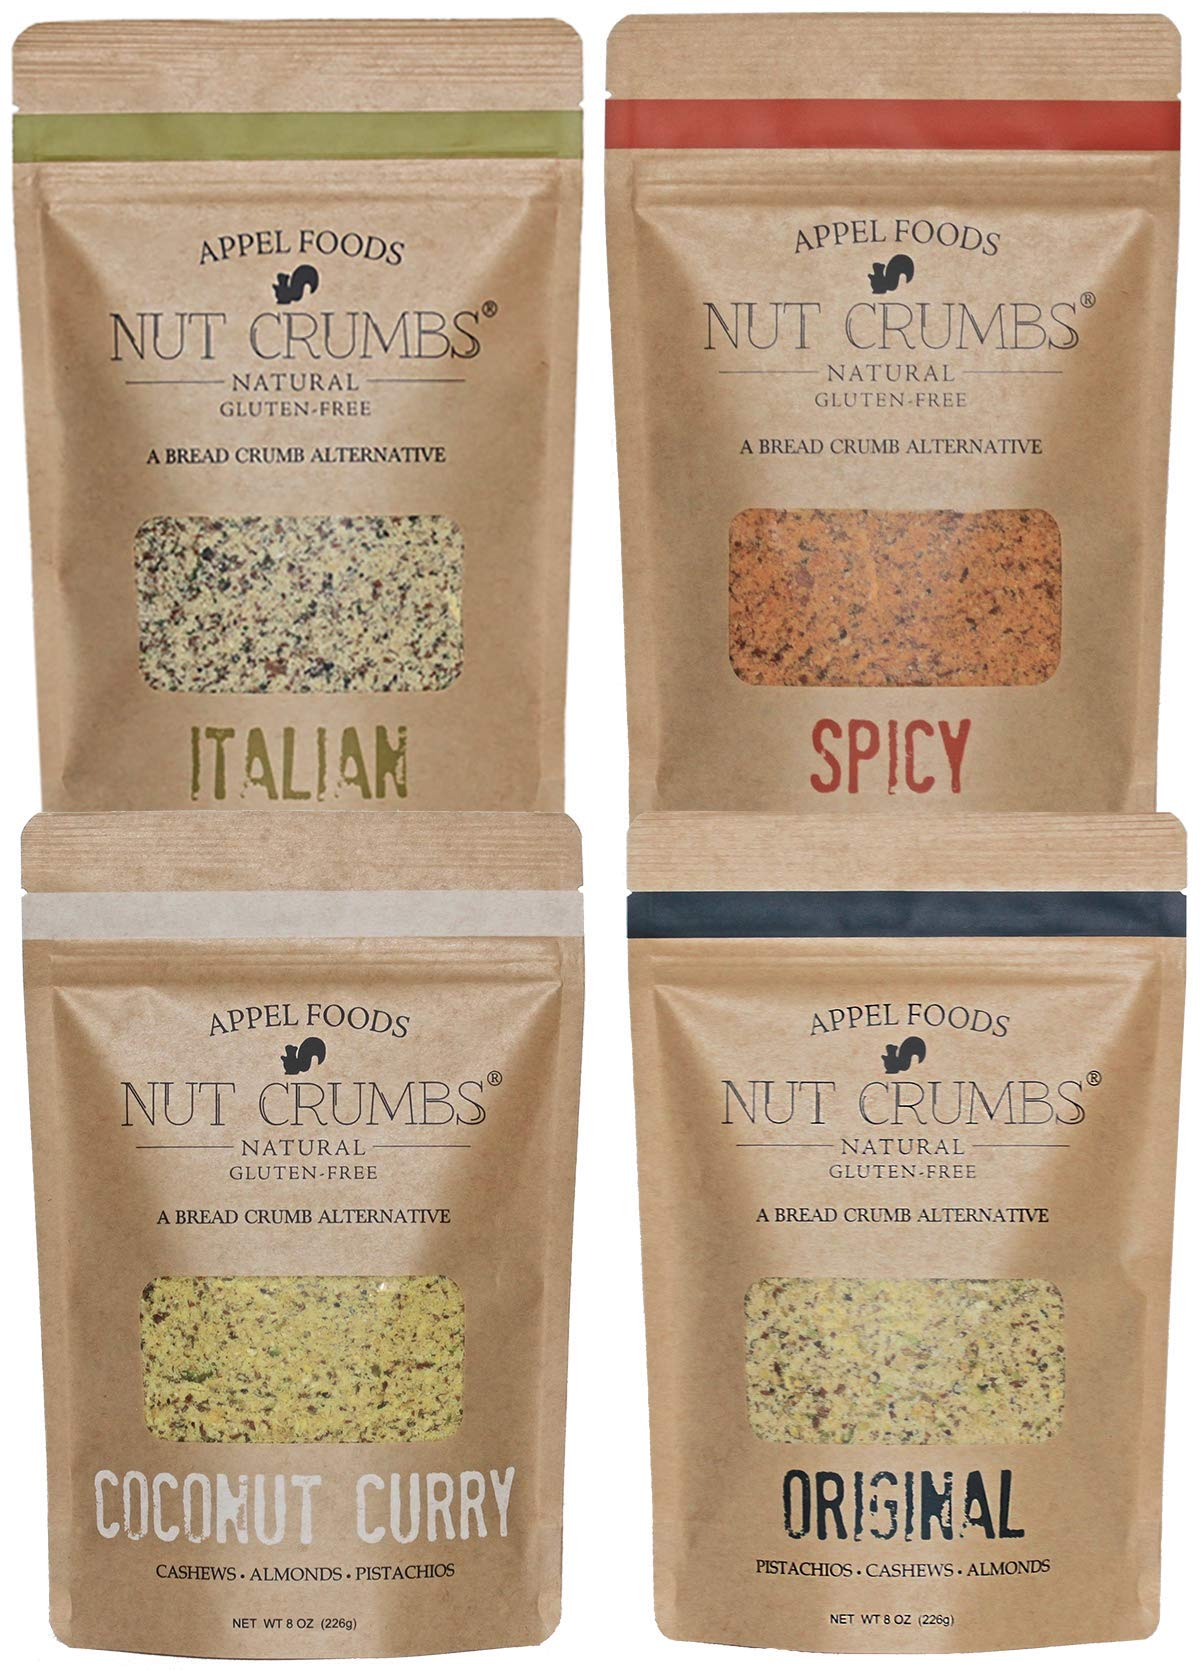 Appel Foods - Nut Crumbs - Bread Crumb Alternative - Gluten Free - Sugar Free - Low Carb - Low Sodium - Raw, Premium Nuts - Variety Pack by Appel Foods Nut Crumbs Natural Gluten-Free A Bread Crumb Alternative